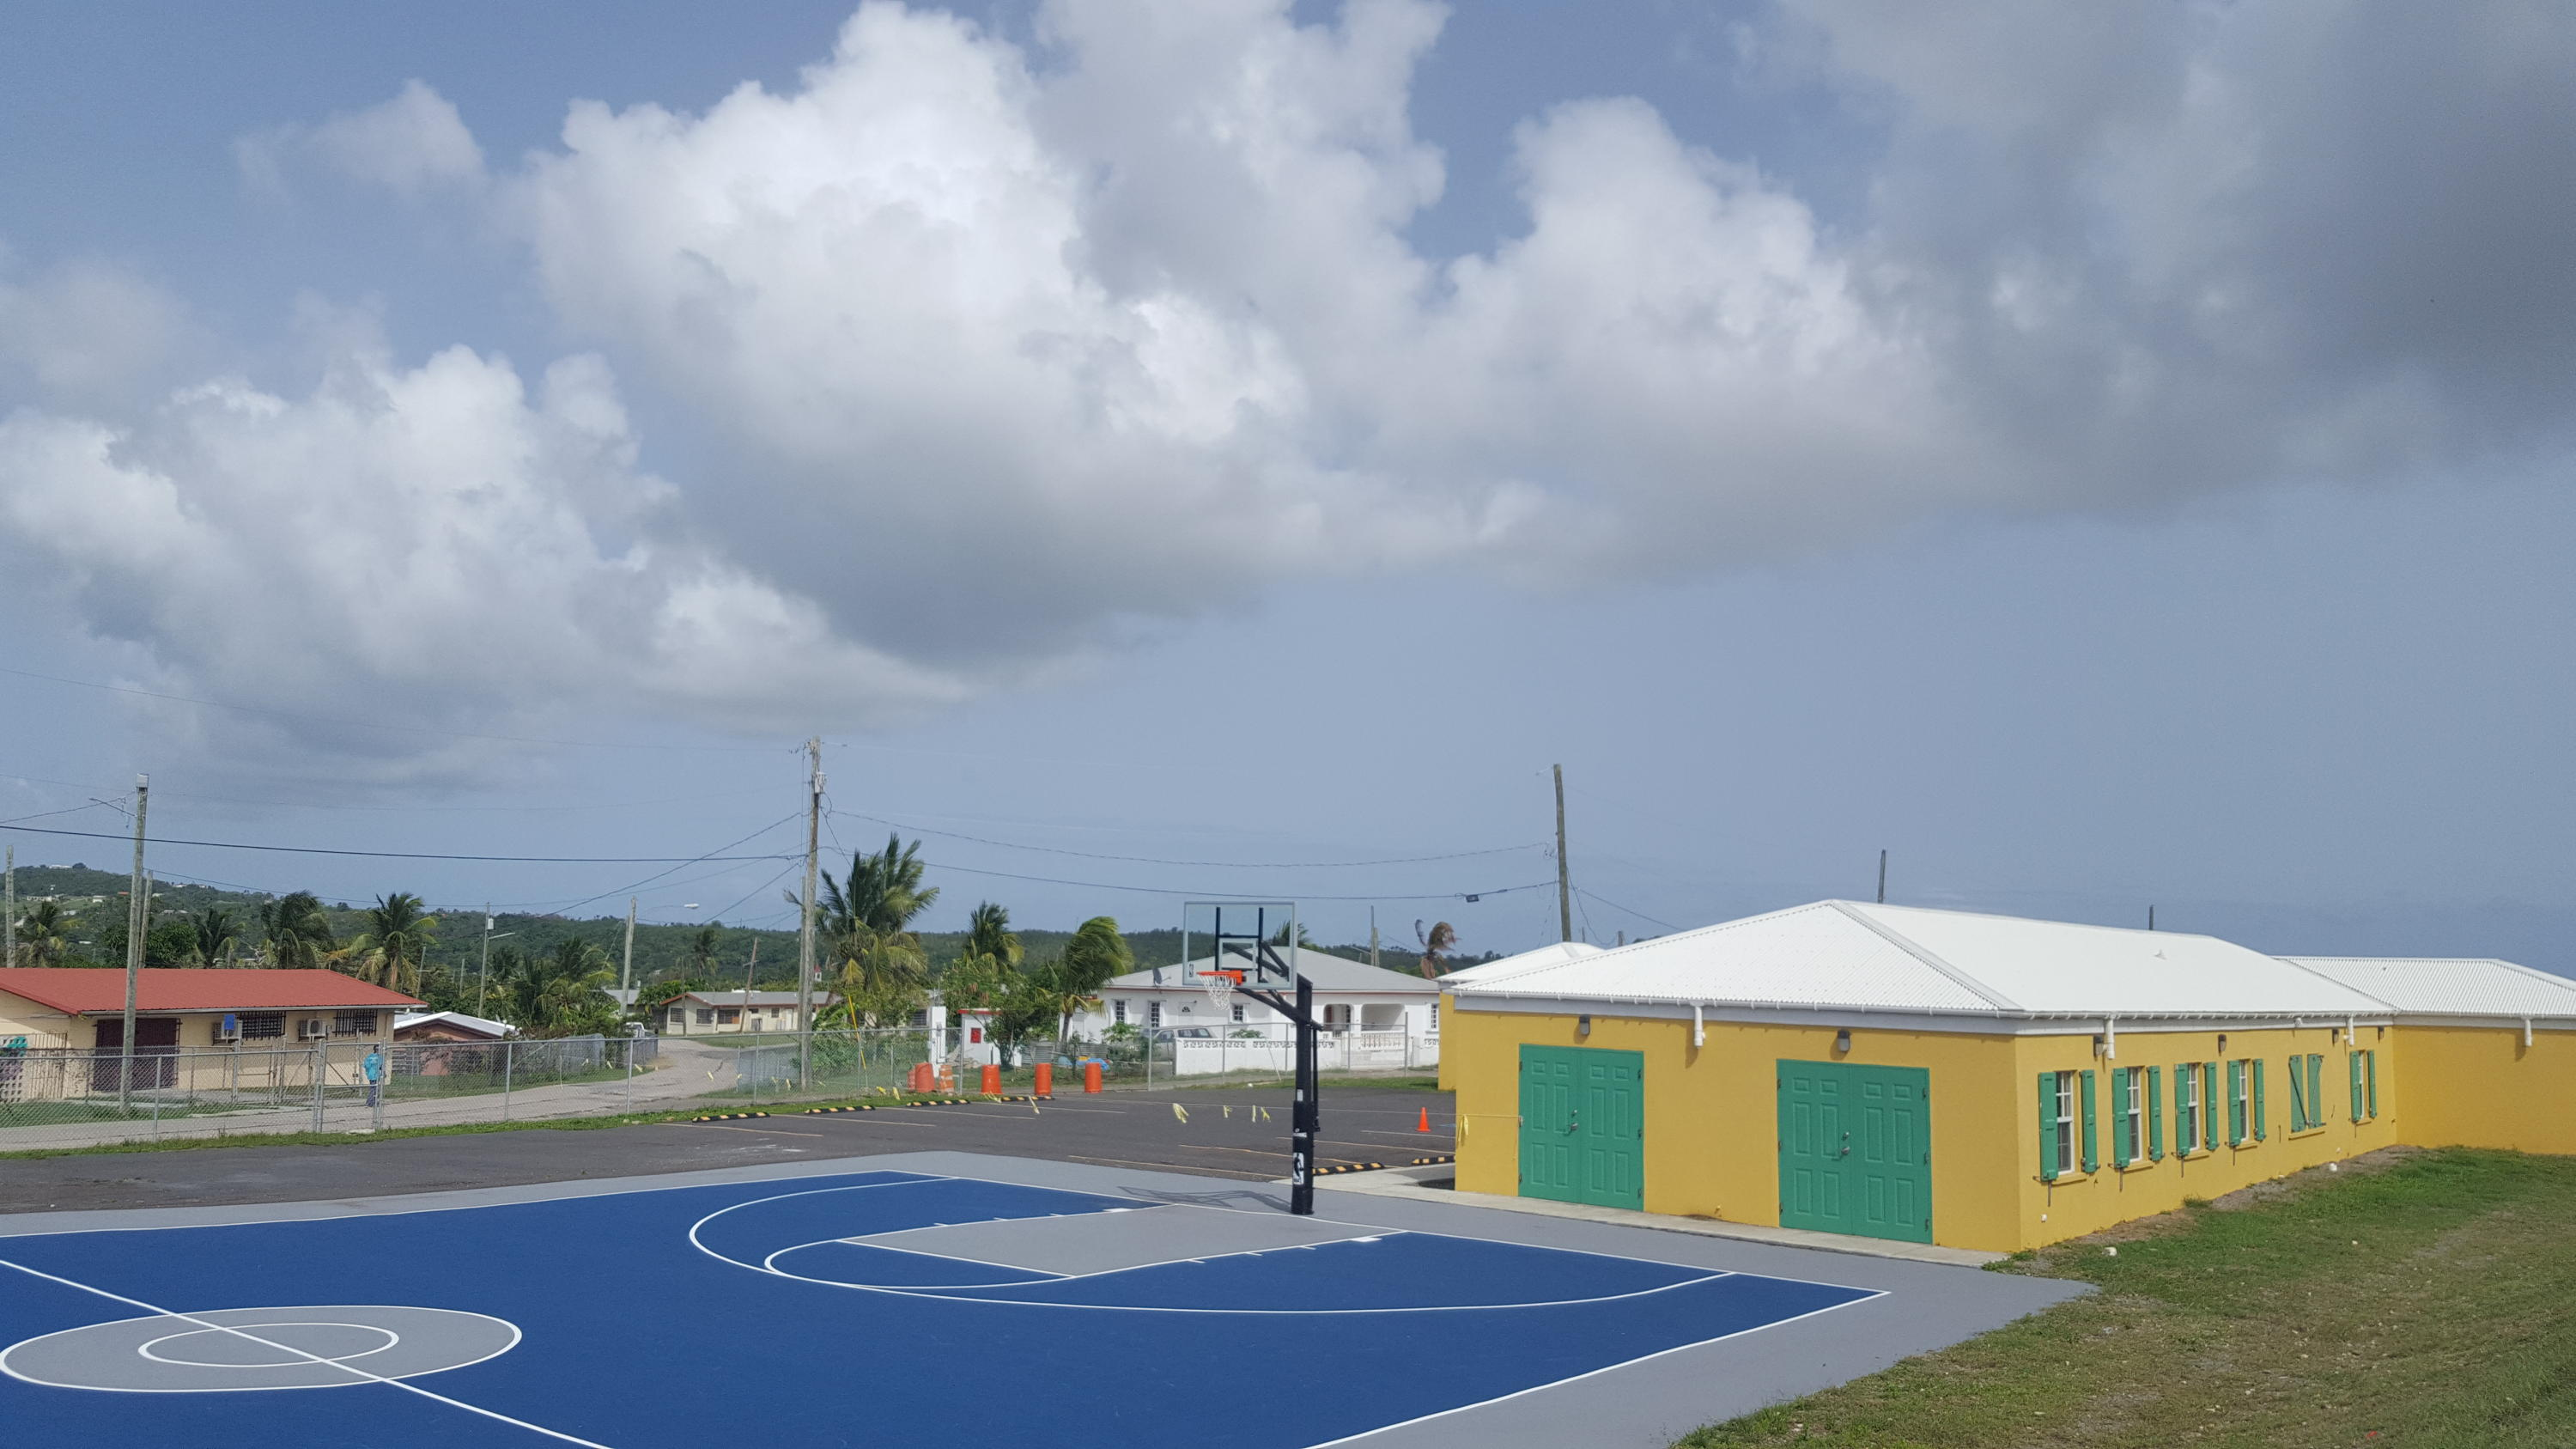 New basketball court for all to use